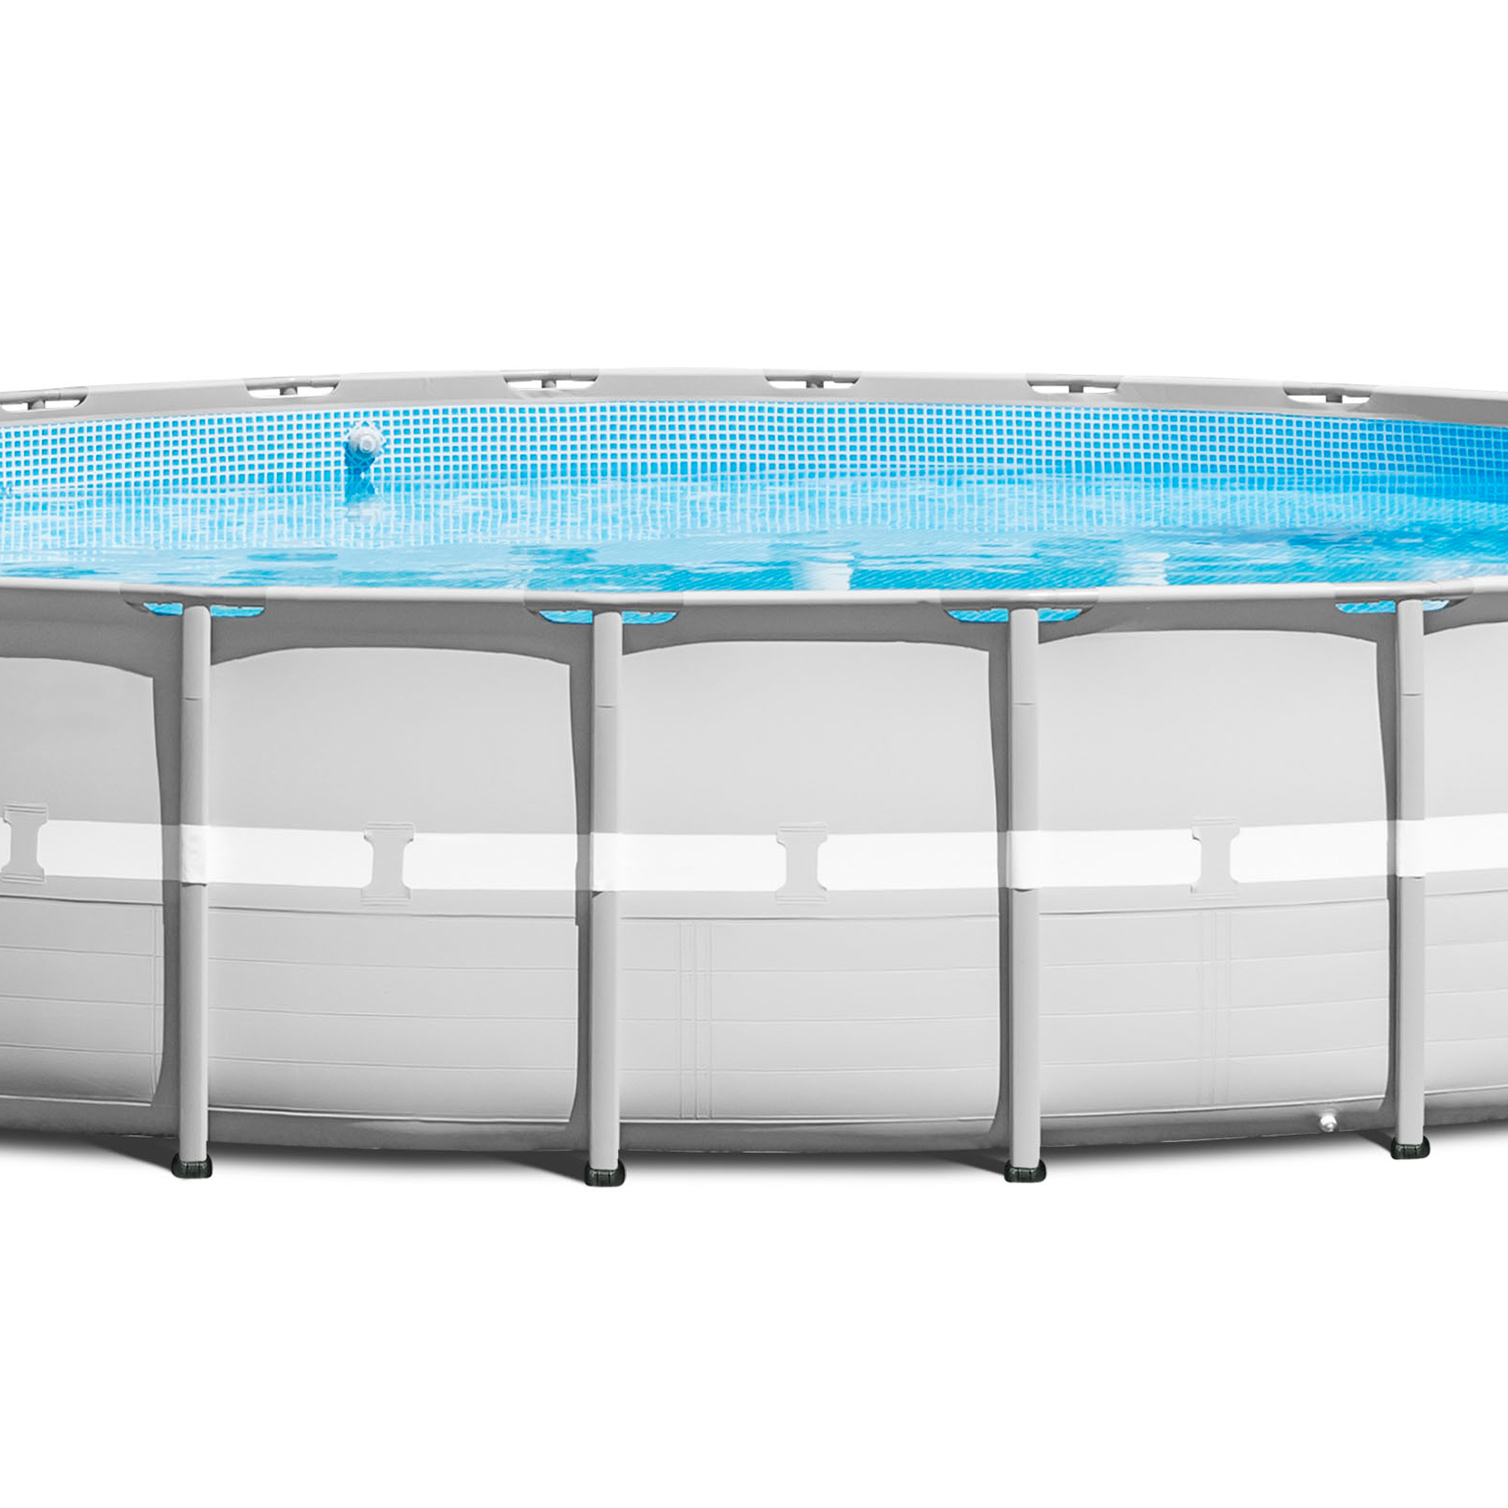 Intex 26 X 52 Quot Ultra Frame Above Ground Swimming Pool Set